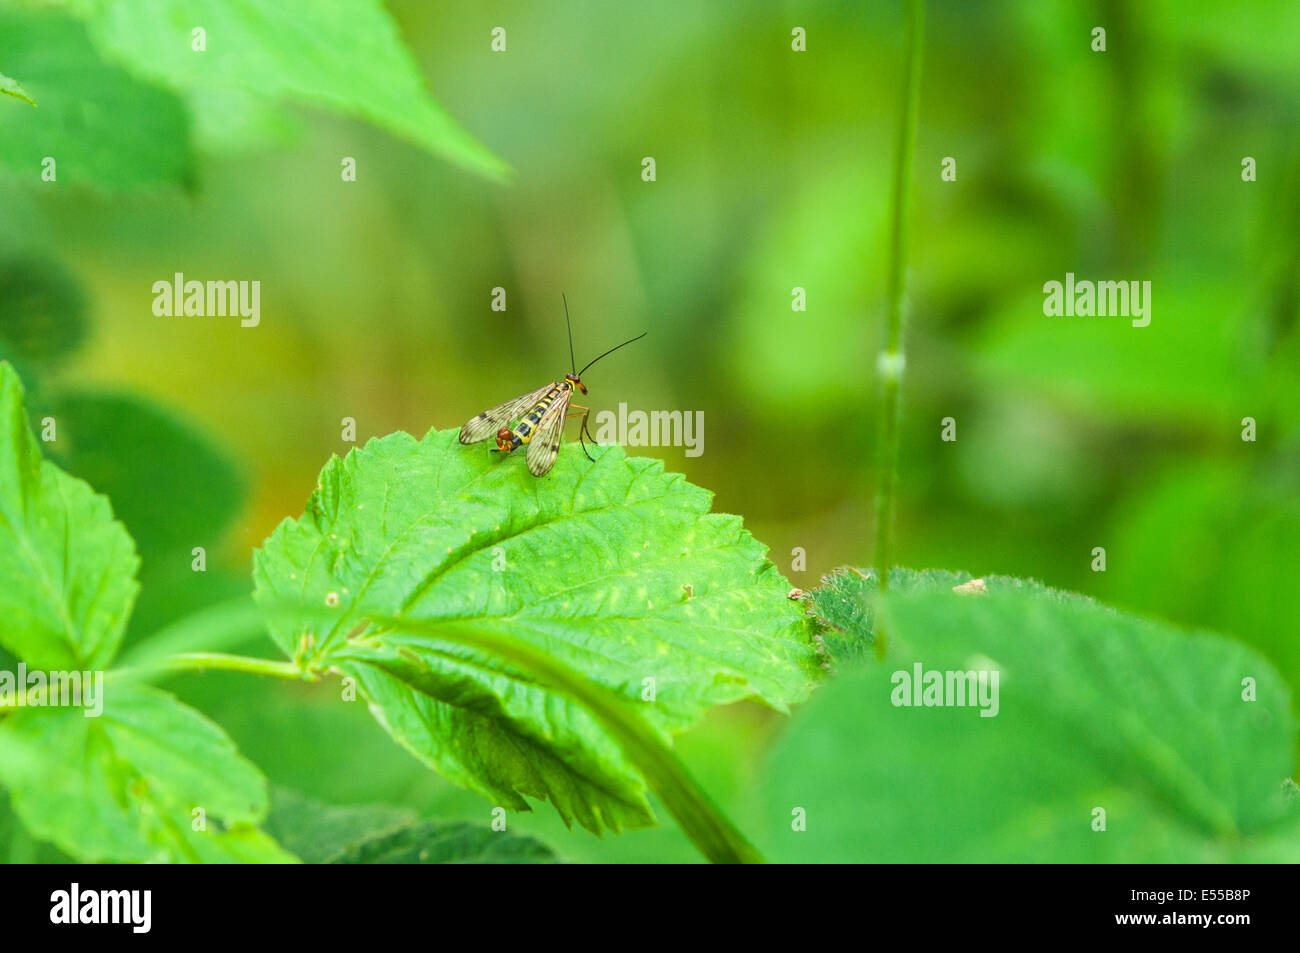 A male Scorpionfly, Panorpa communis, resting on nettle, Urtica dioica Stock Photo